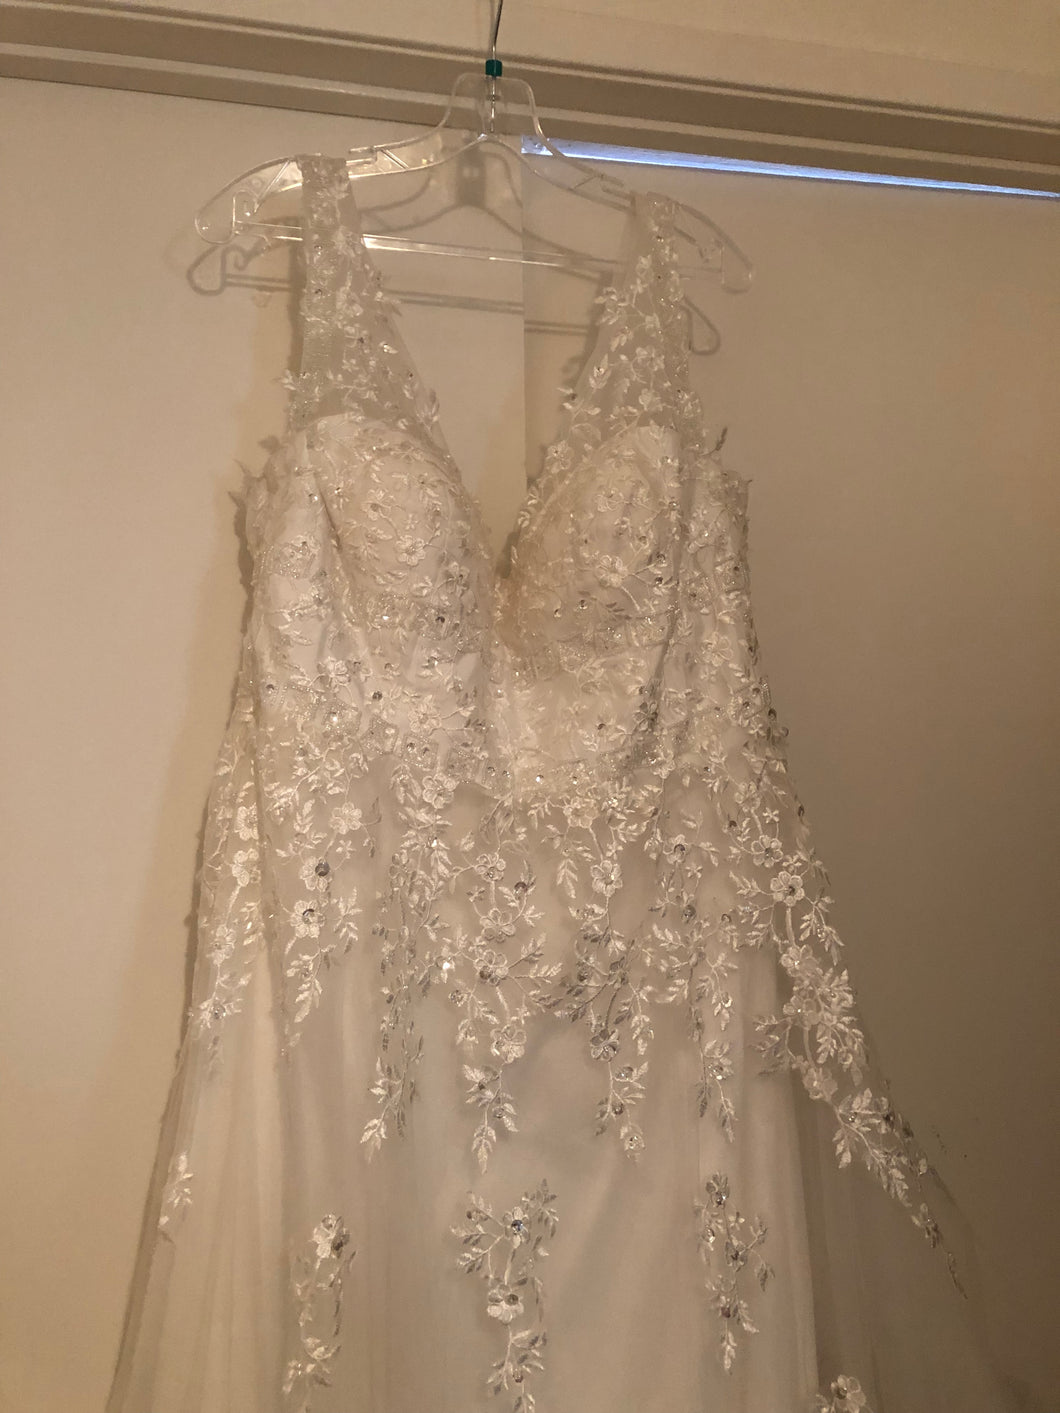 Simply Bridal 'Off the Shoulder' size 16 new wedding dress front view on hanger